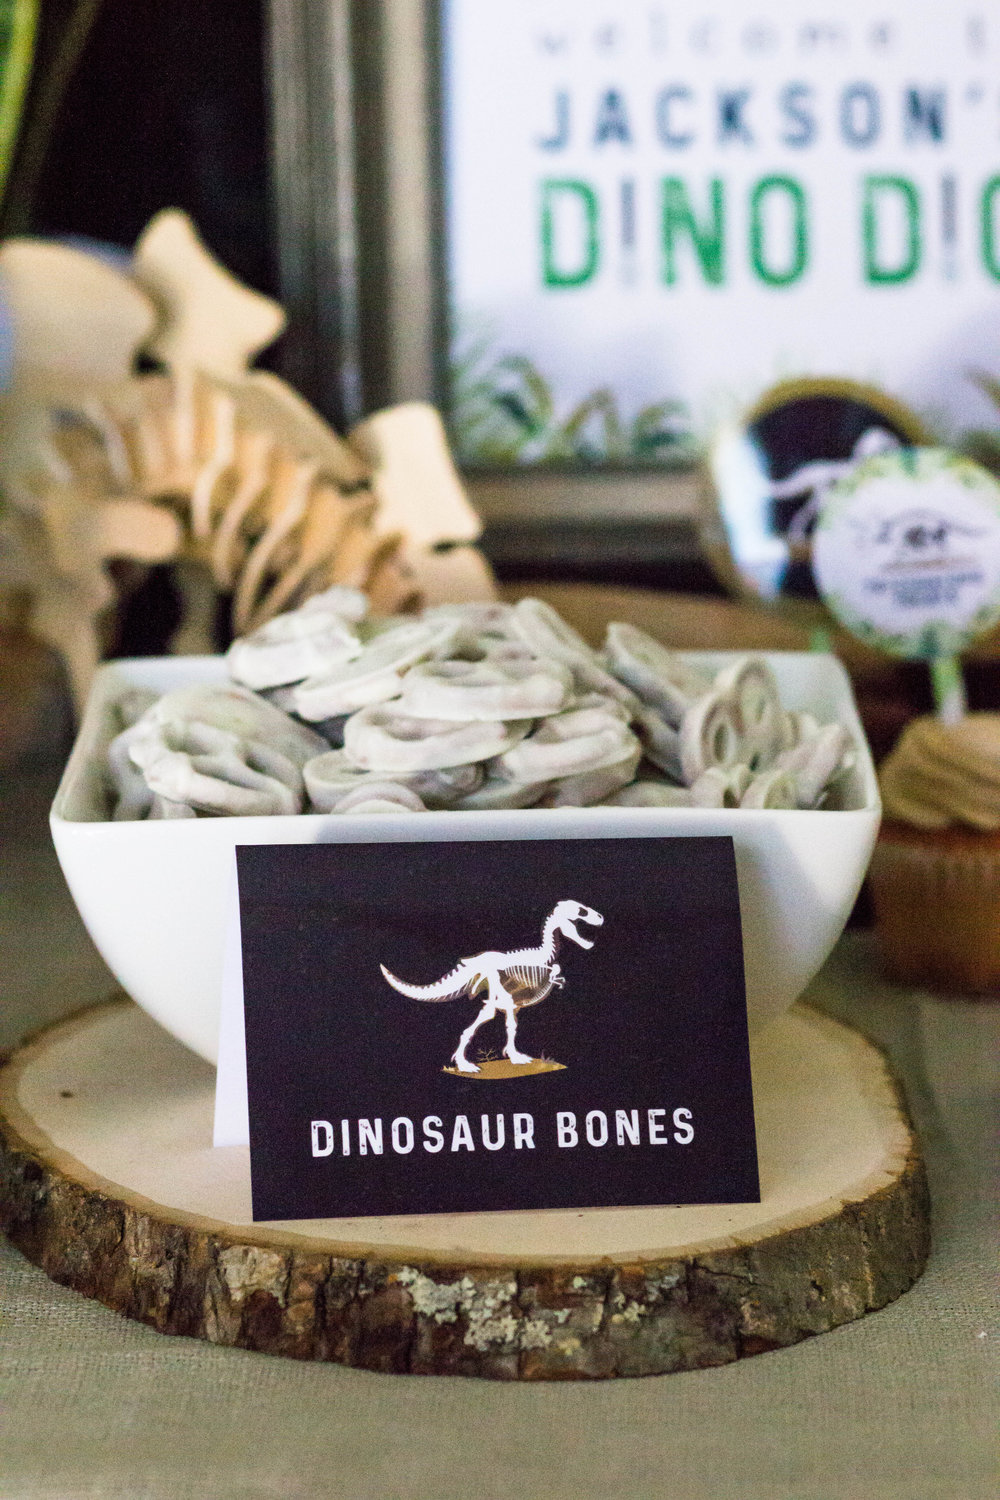 Dinosaur Bones food card download from shopmkkm.com